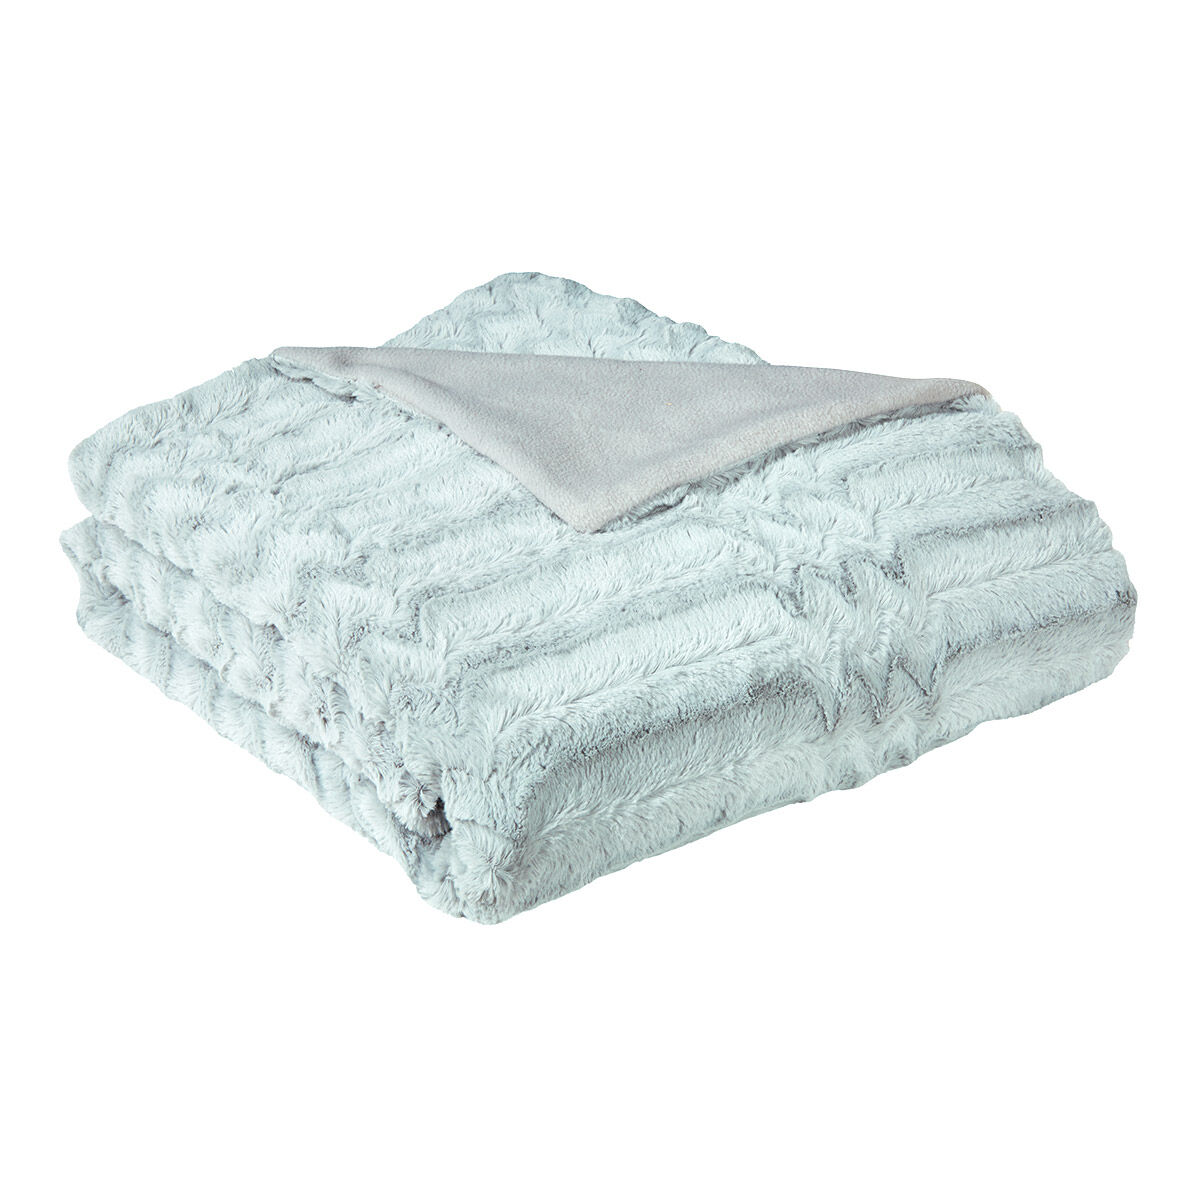 Plaid Fa On Fausse Fourrure Grizzly Gris I Fil Home